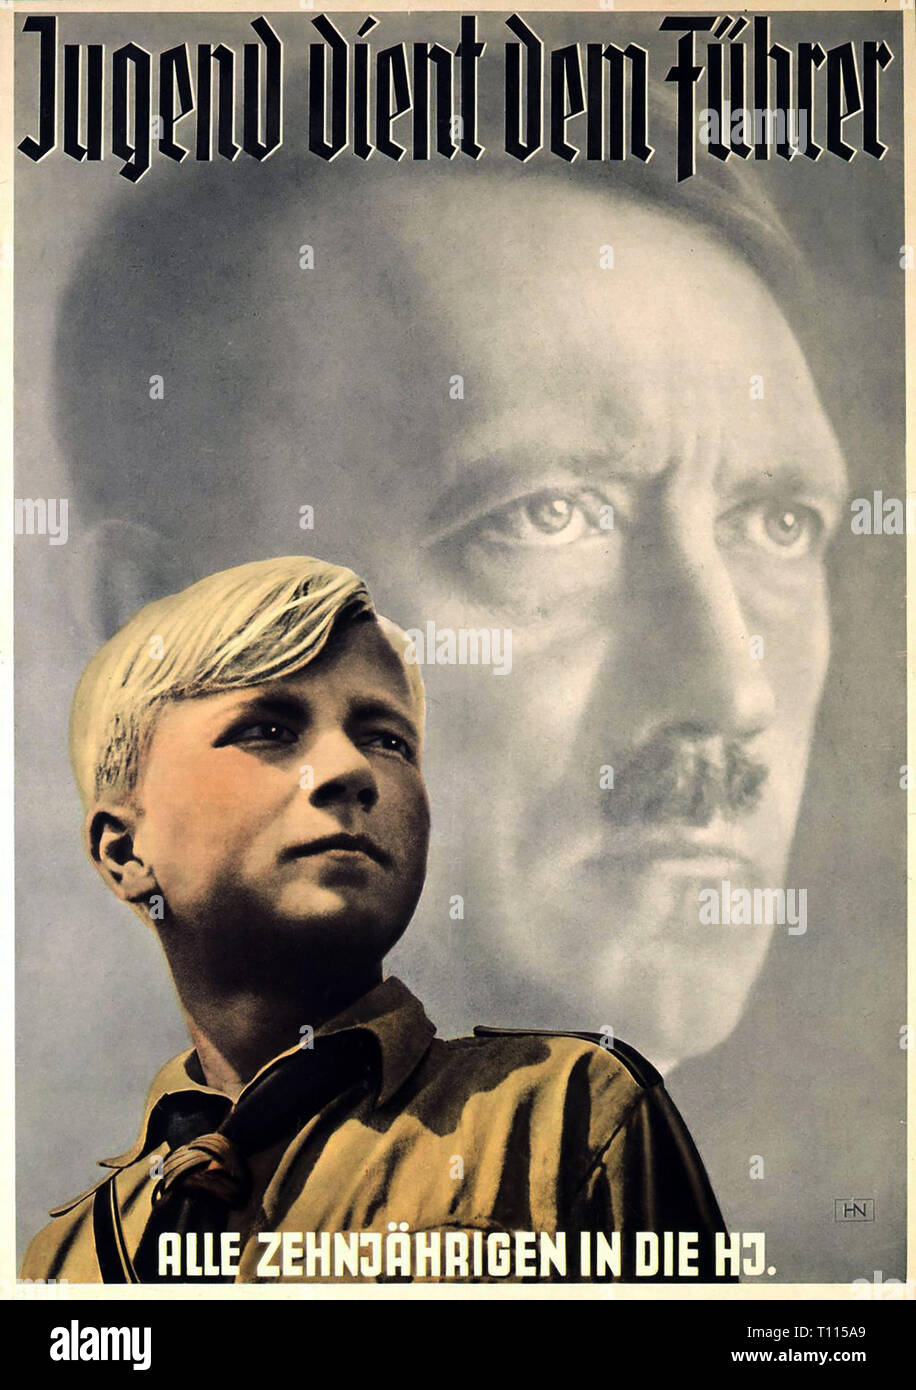 Nazism / National Socialism, organisations, Hitler Youth Junior Section, poster 'Jugend dient dem Fuehrer' (Youth Is Serving the Fuehrer), design: Hein Neuner (1910 - 1984), 1939, Additional-Rights-Clearance-Info-Not-Available - Stock Image